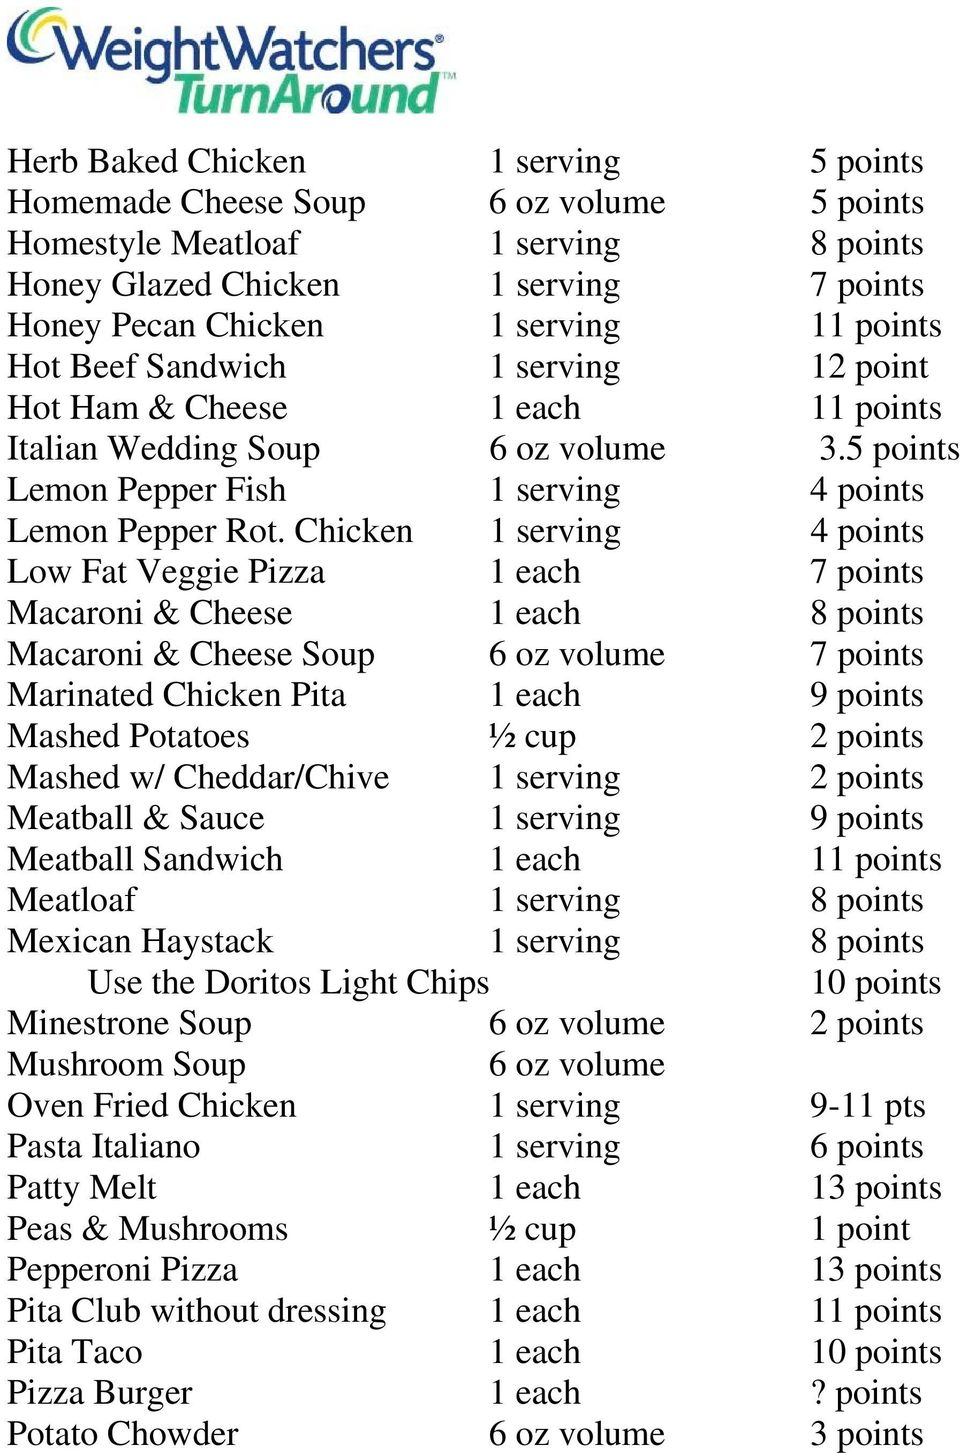 Chicken 1 serving 4 points Low Fat Veggie Pizza 1 each 7 points Macaroni & Cheese 1 each 8 points Macaroni & Cheese Soup 6 oz volume 7 points Marinated Chicken Pita 1 each 9 points Mashed Potatoes ½